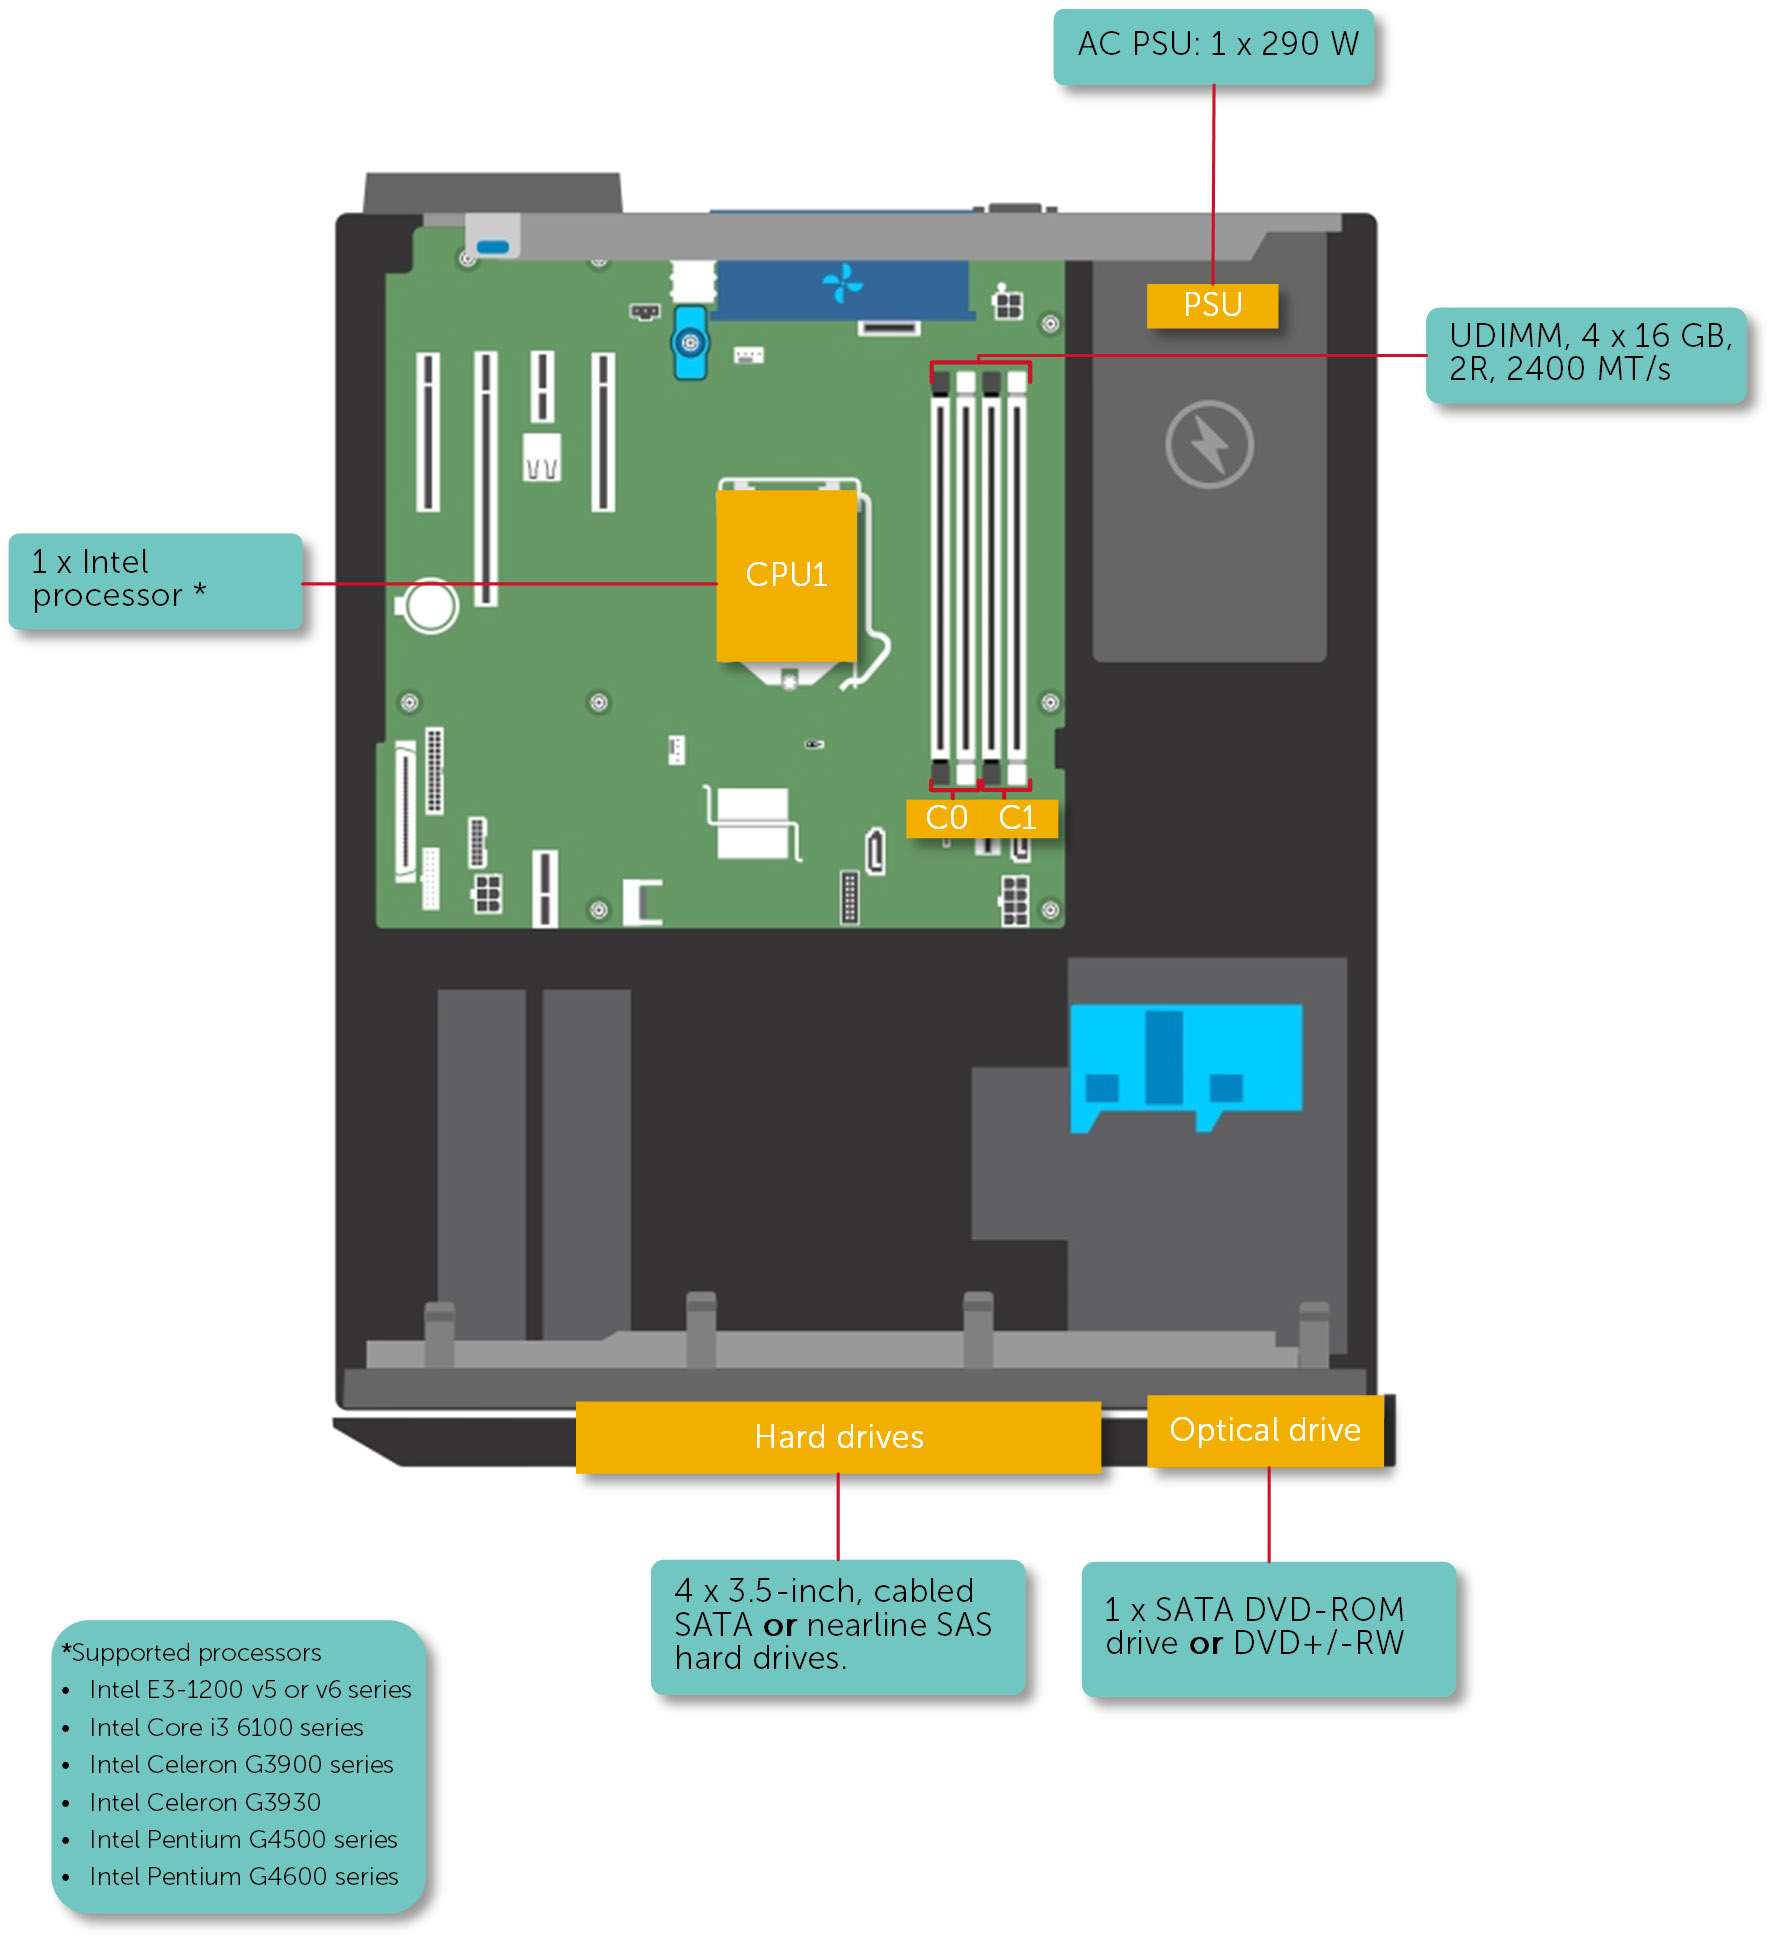 Dell PowerEdge T130 Owner's Manual